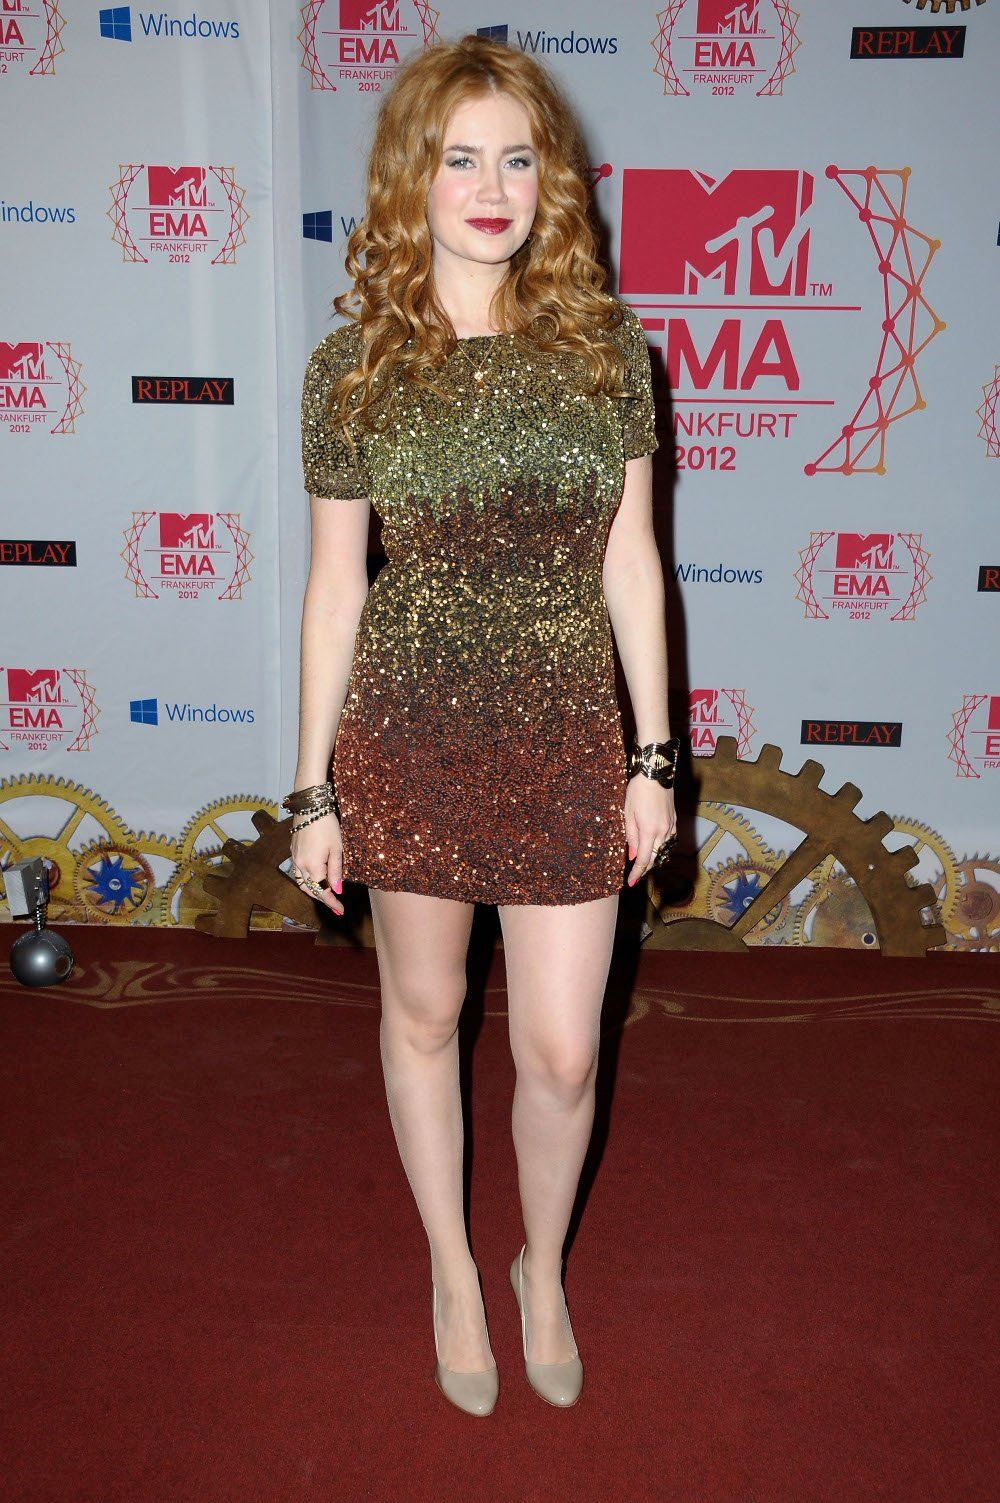 palina  1000+ images about Palina Rojinski on Pinterest | Nice, The o'jays and Interview